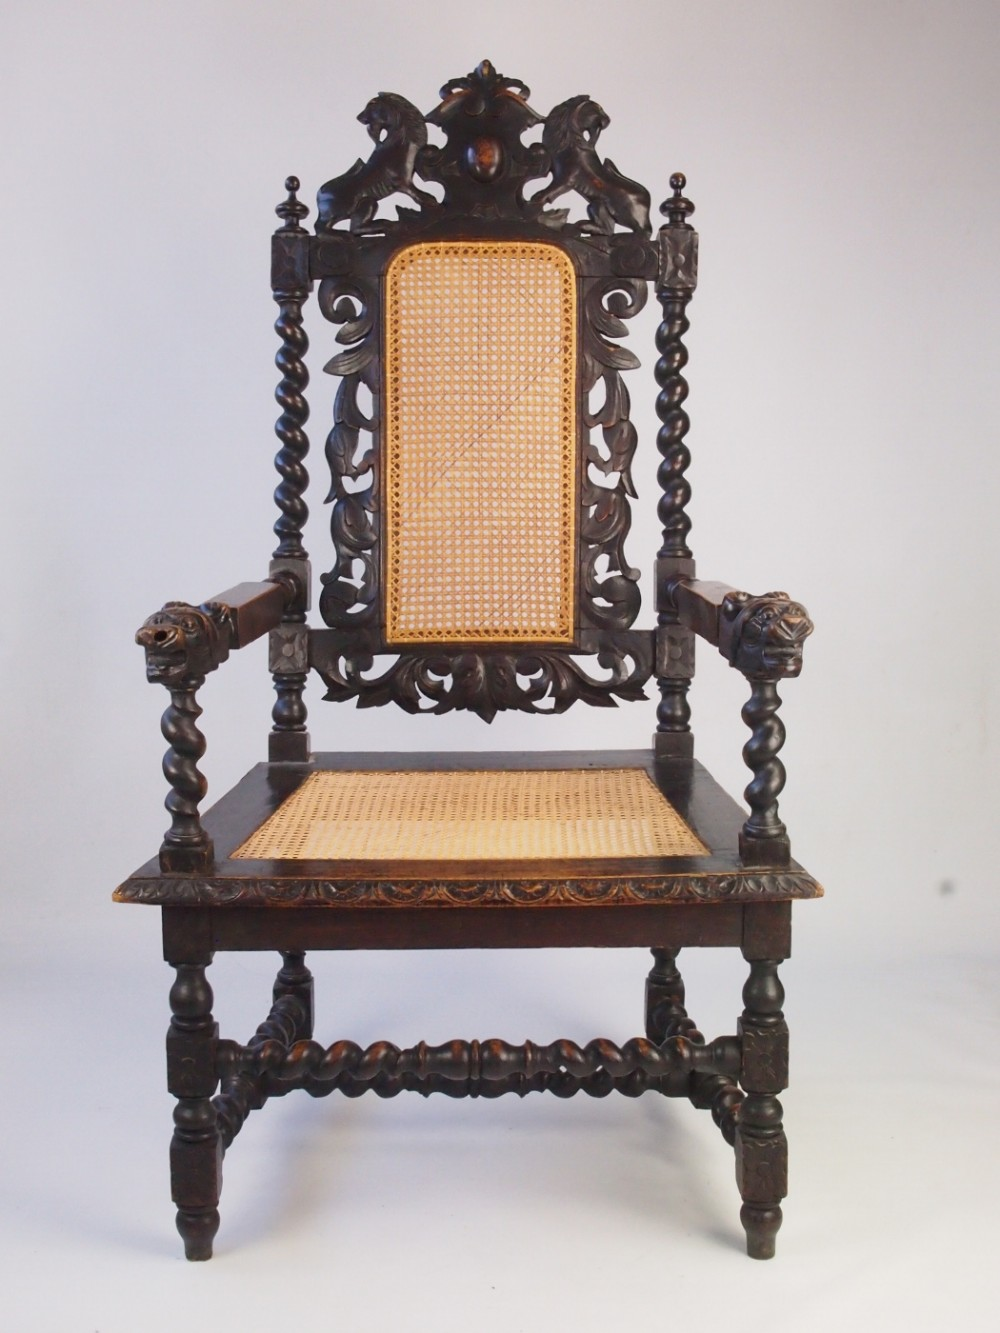 large antique victorian gothic revival throne chair - Large Antique Victorian Gothic Revival Throne Chair 313965